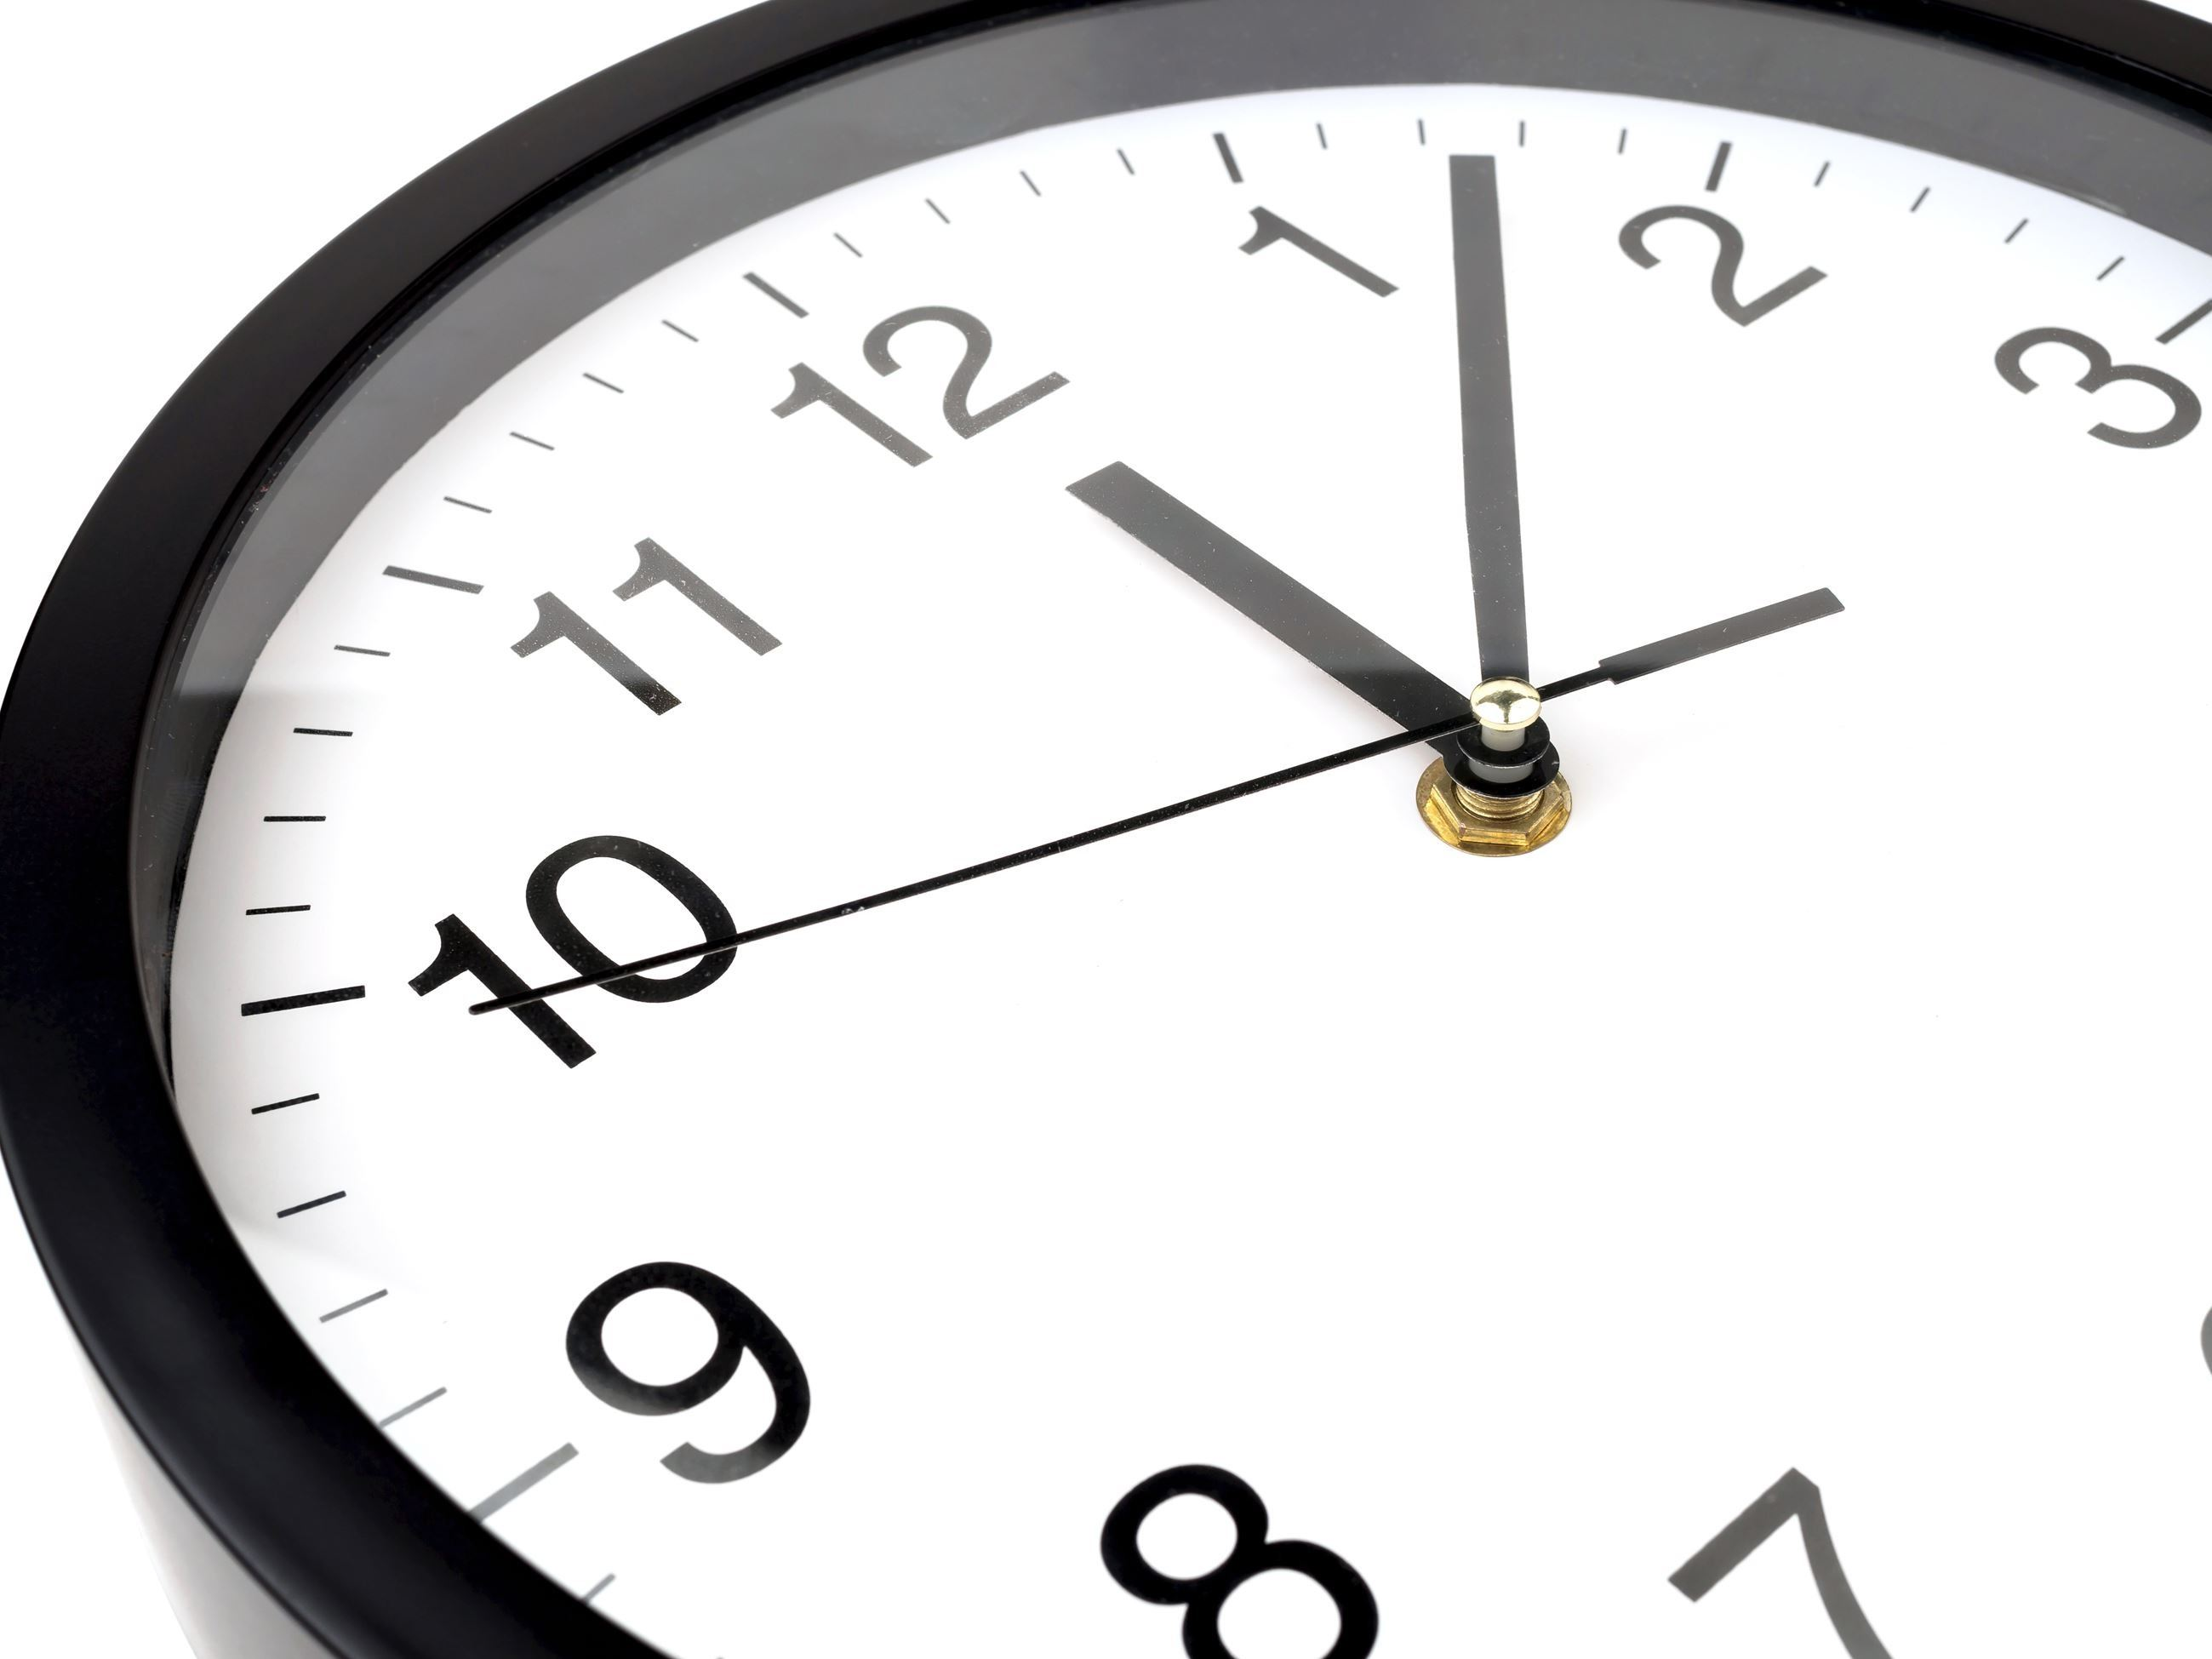 bigstock-Clock-Or-Time-Abstract-Backgro-252566737